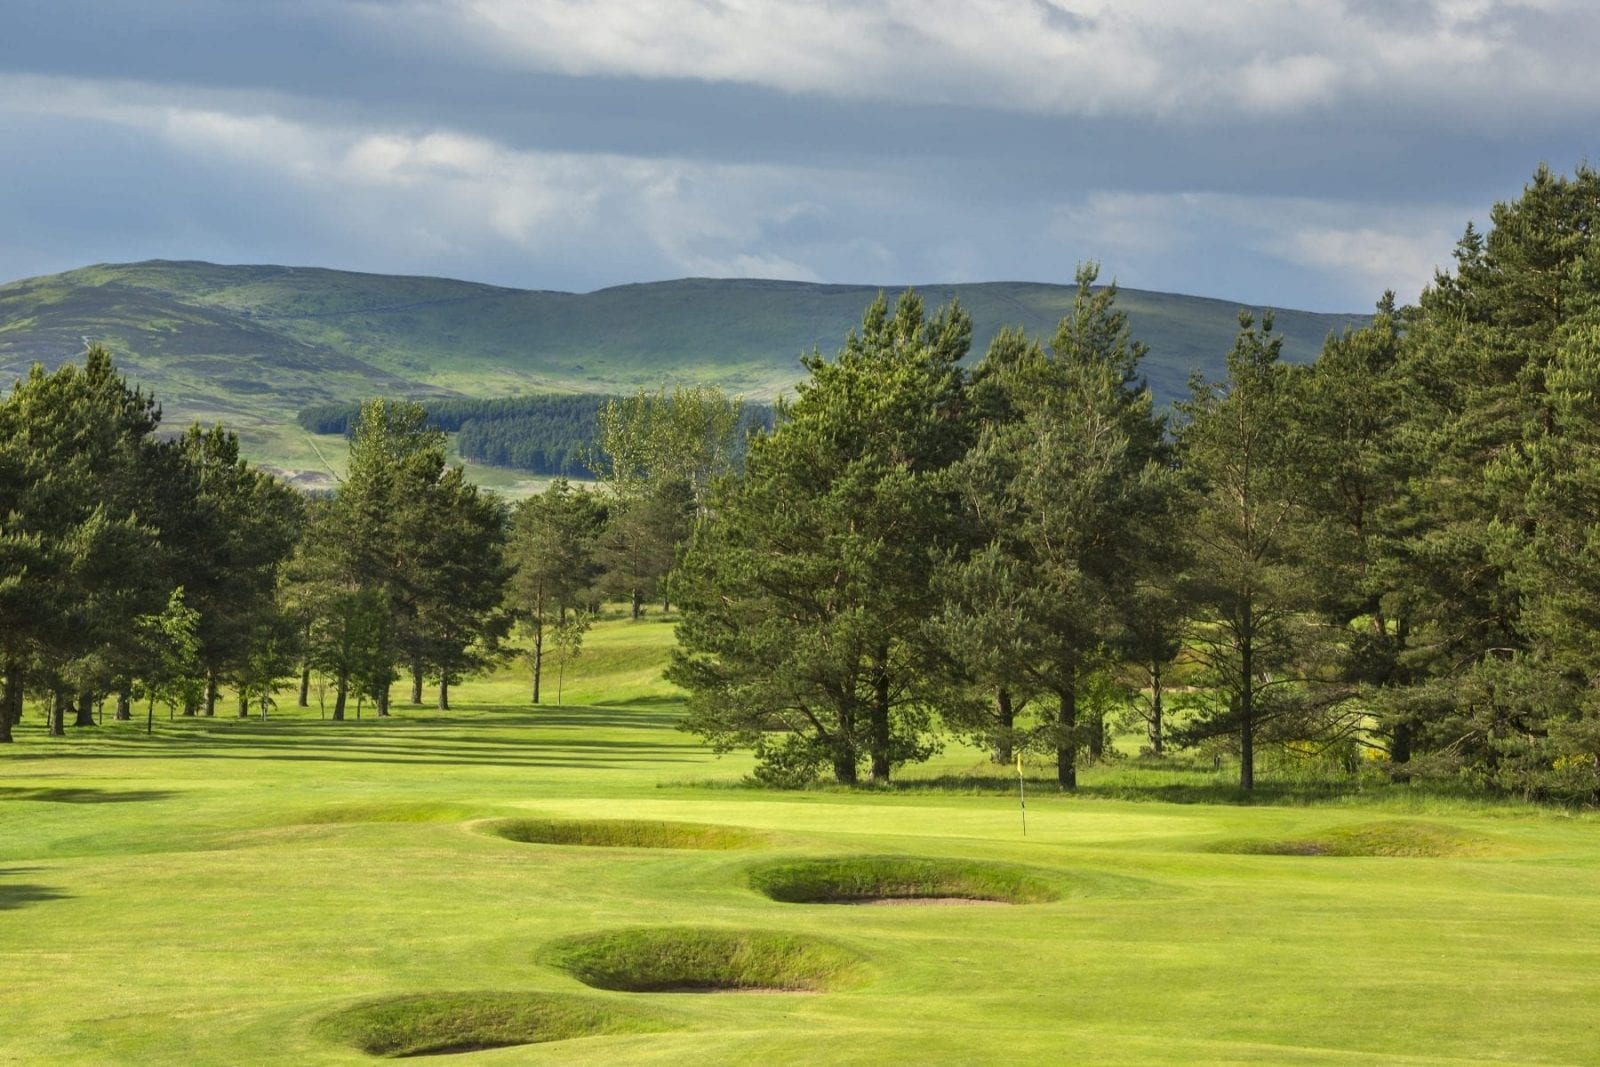 Edzell Golf Club